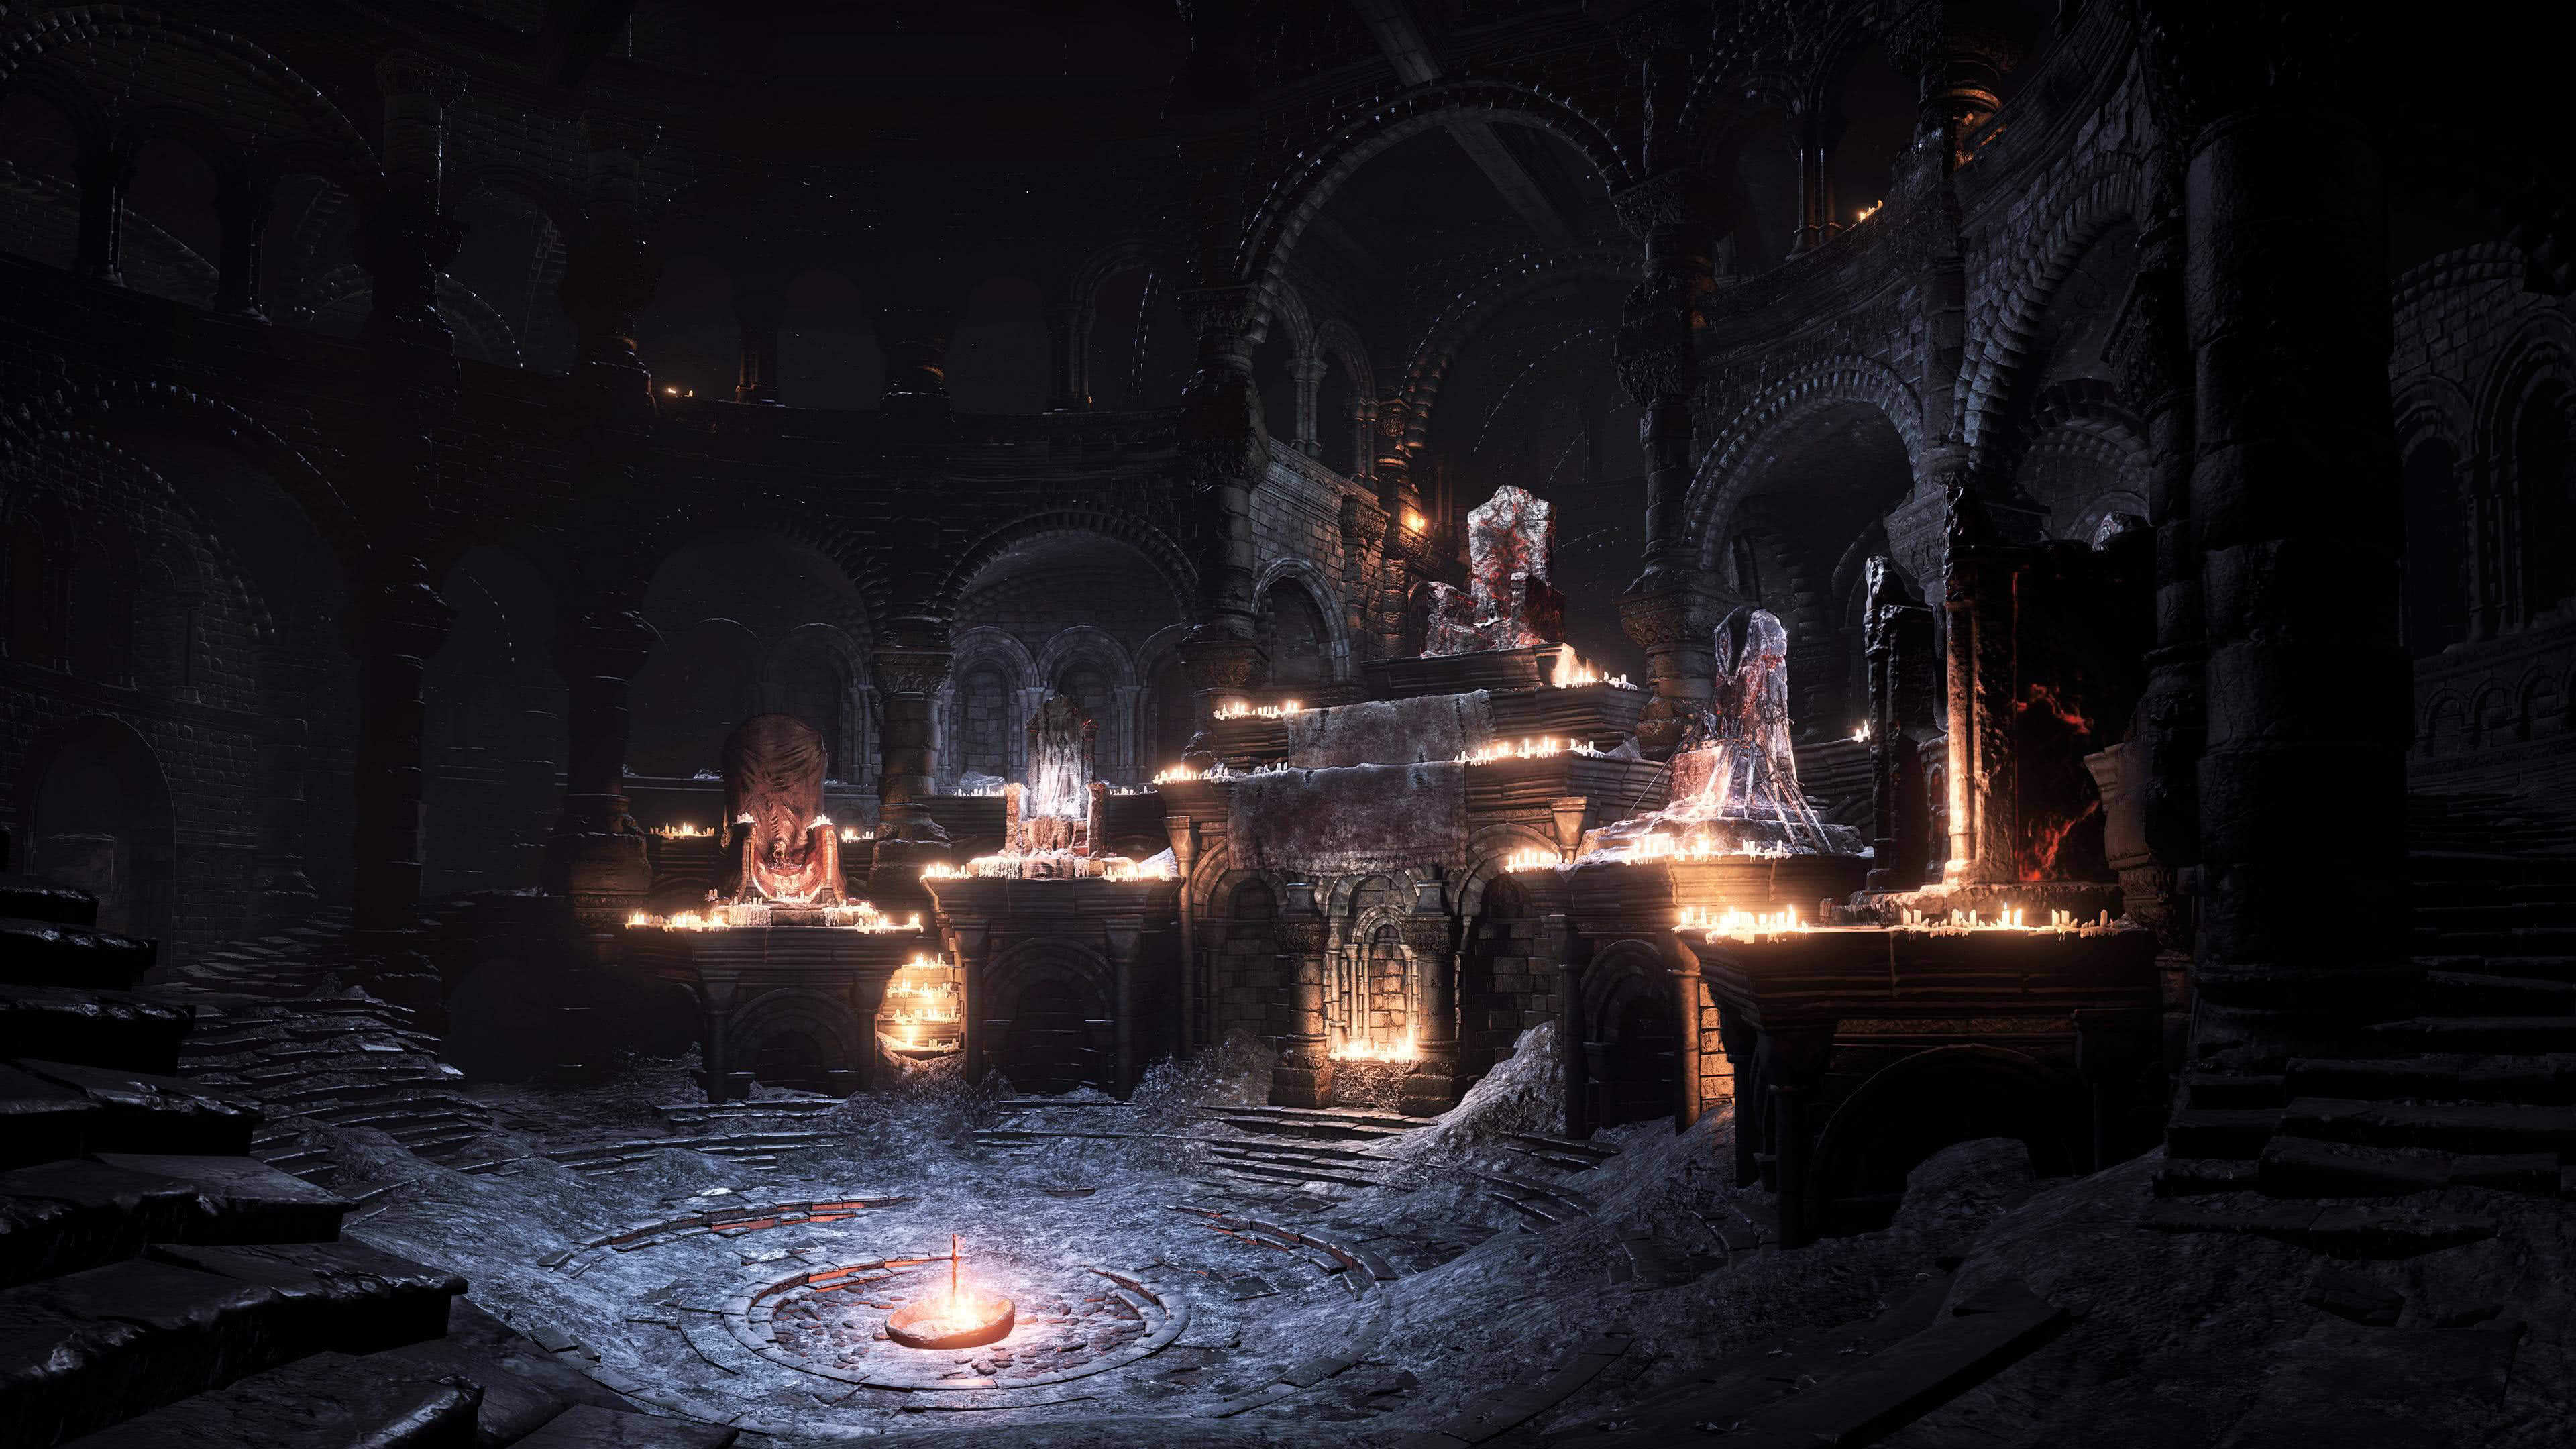 Dark Souls 3 Firelink Shrine Uhd 4k Wallpaper Pixelz Cc